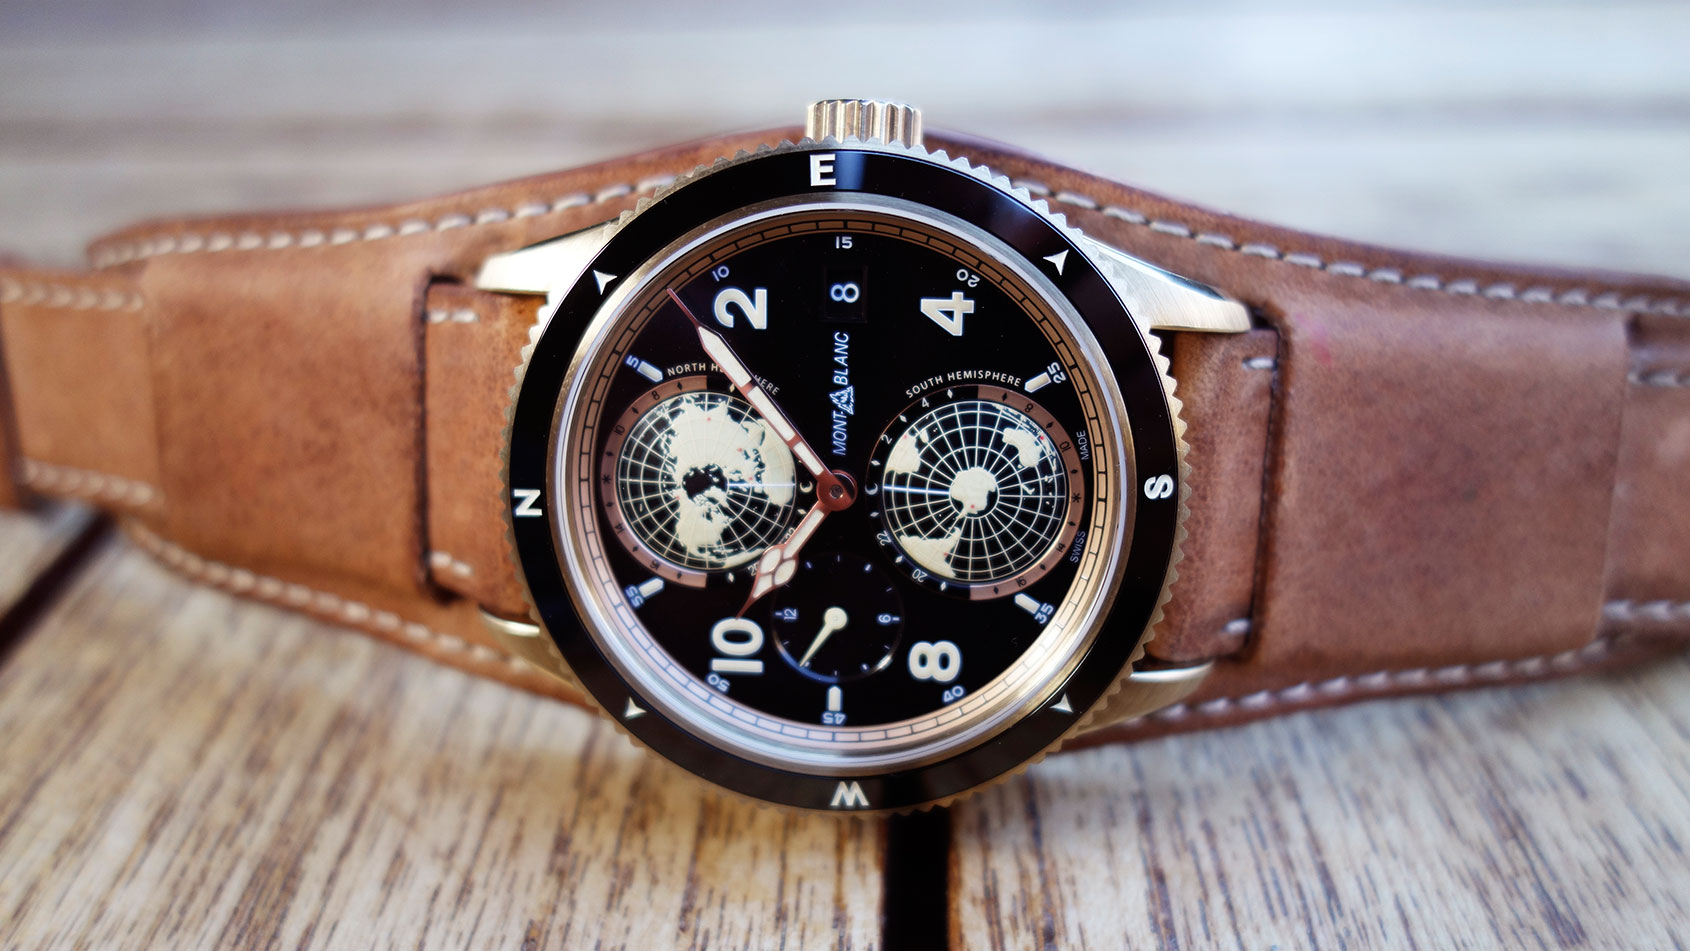 a39a718c9d9 Montblanc 1858 Geosphere pricing